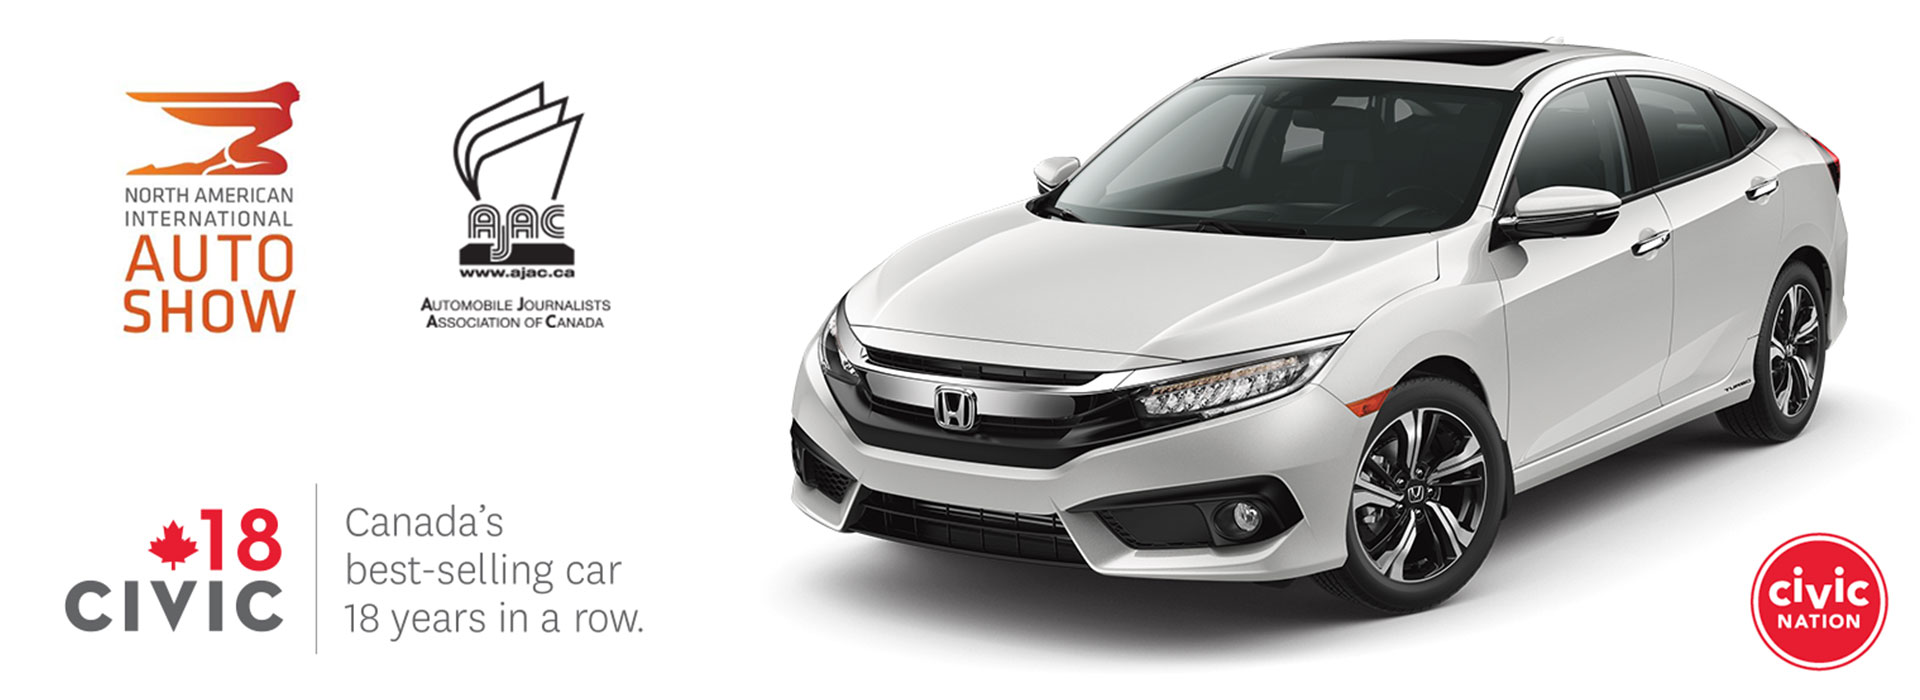 The Award Winning All-New Civic